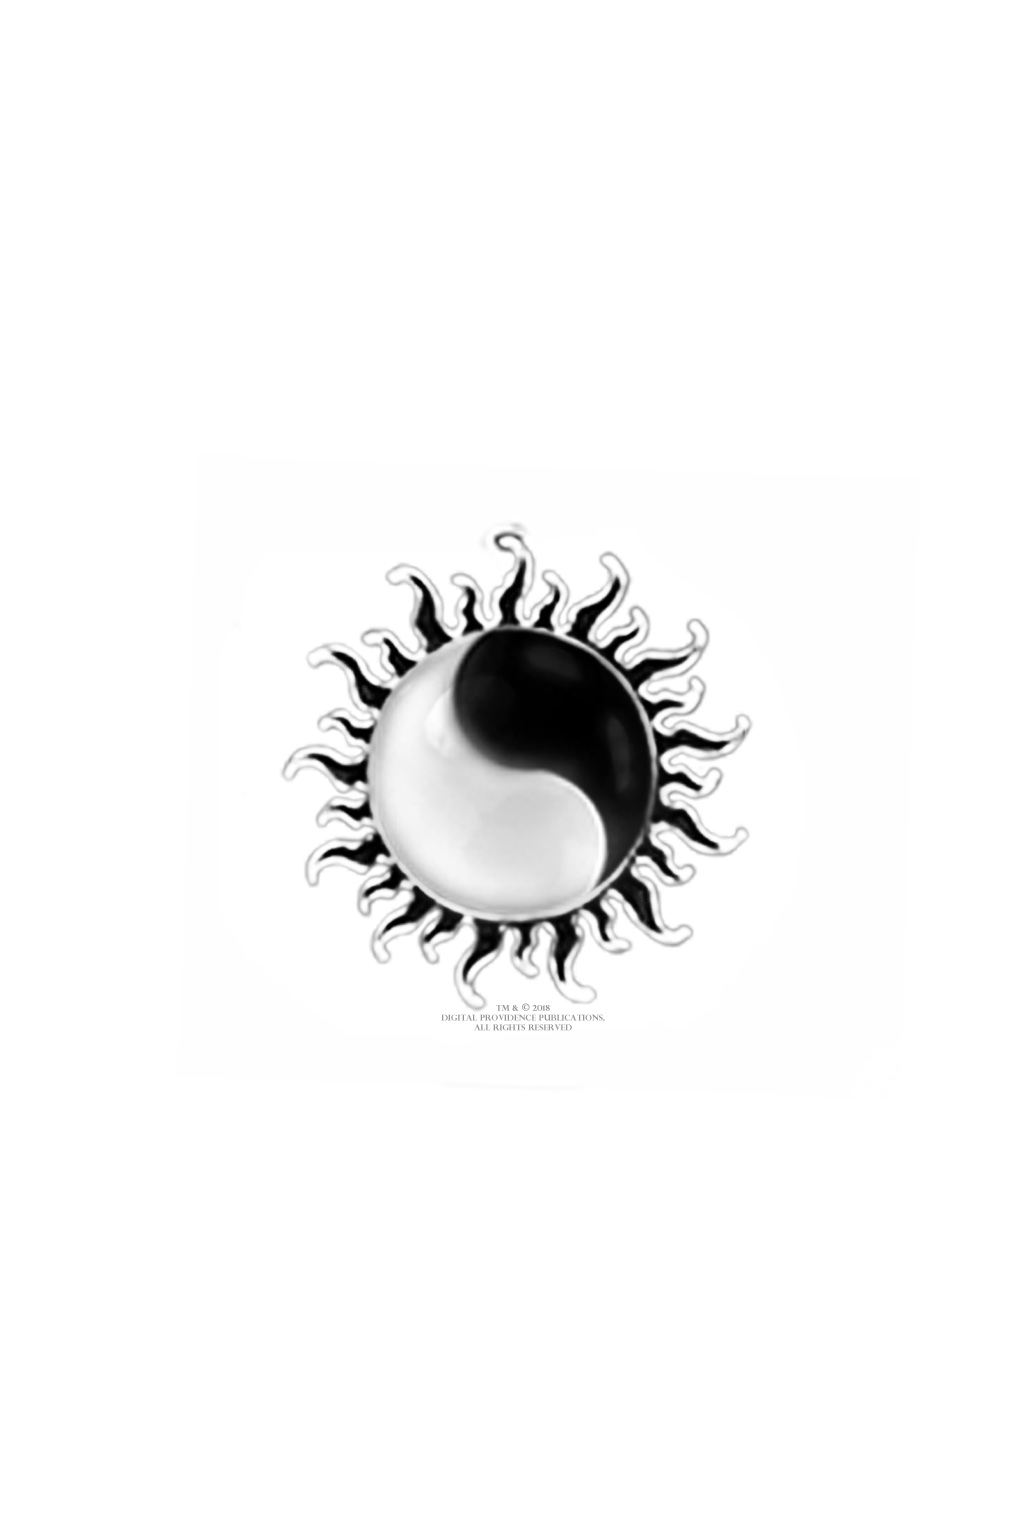 Yin-yang symbol within fiery black sun with black flames and silver outline logo on white background, TM and © 2018, Digital Providence Publications, All Rights Reserved